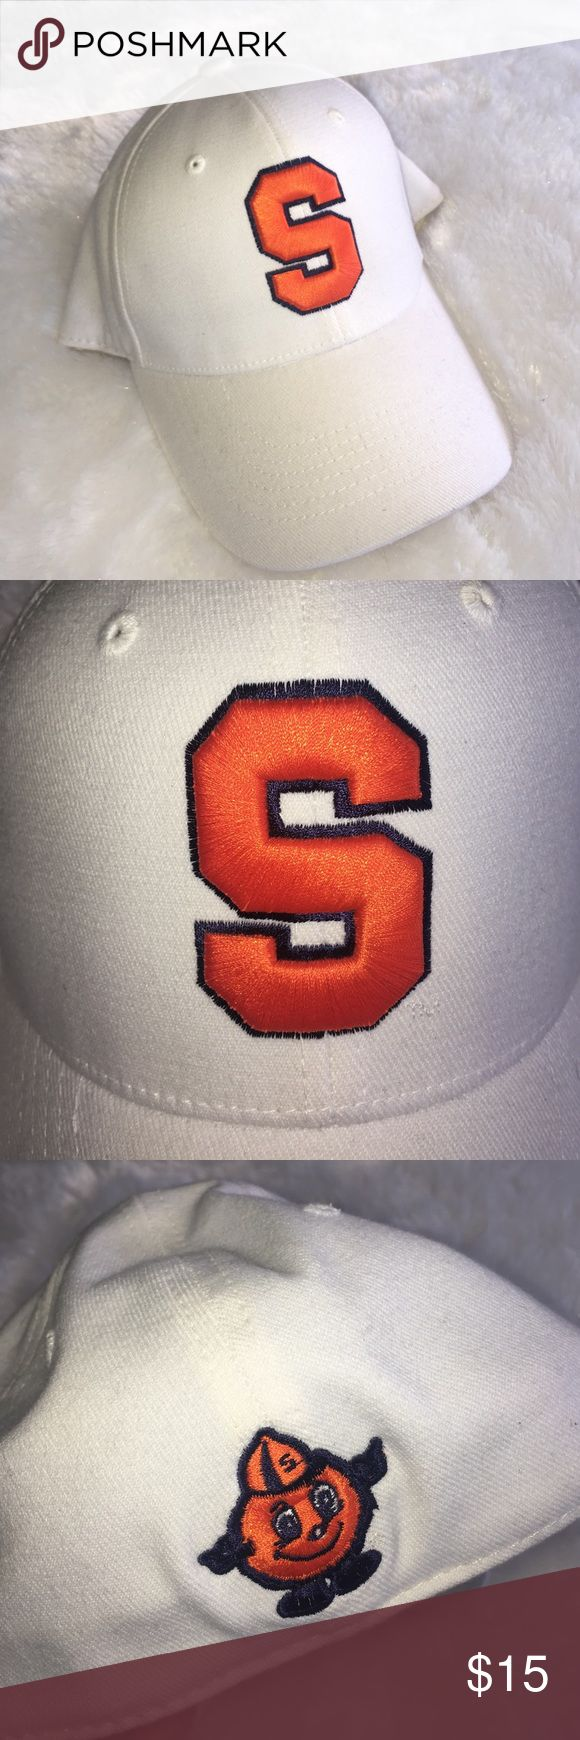 """White Syracuse Orangemen one fit hat Only worn once and in excellent condition!  """"One fit"""" sizing stretches to accommodate most sizes. Top of the World Accessories Hats"""